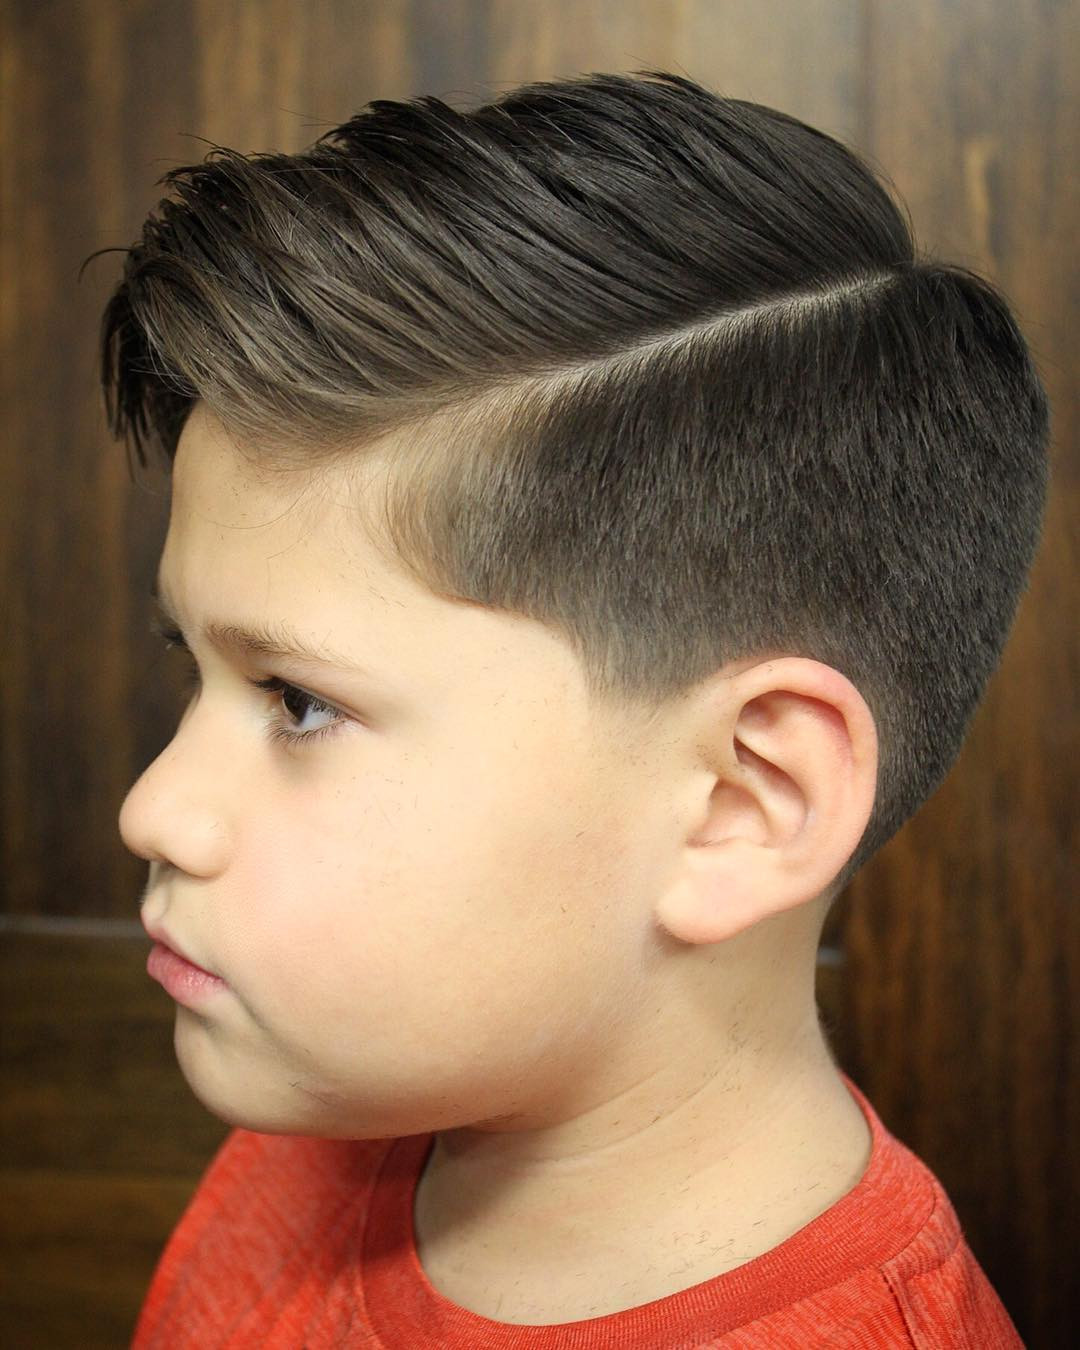 Best ideas about Hairstyles For Kids . Save or Pin 50 Cool Haircuts for Kids for 2019 Now.